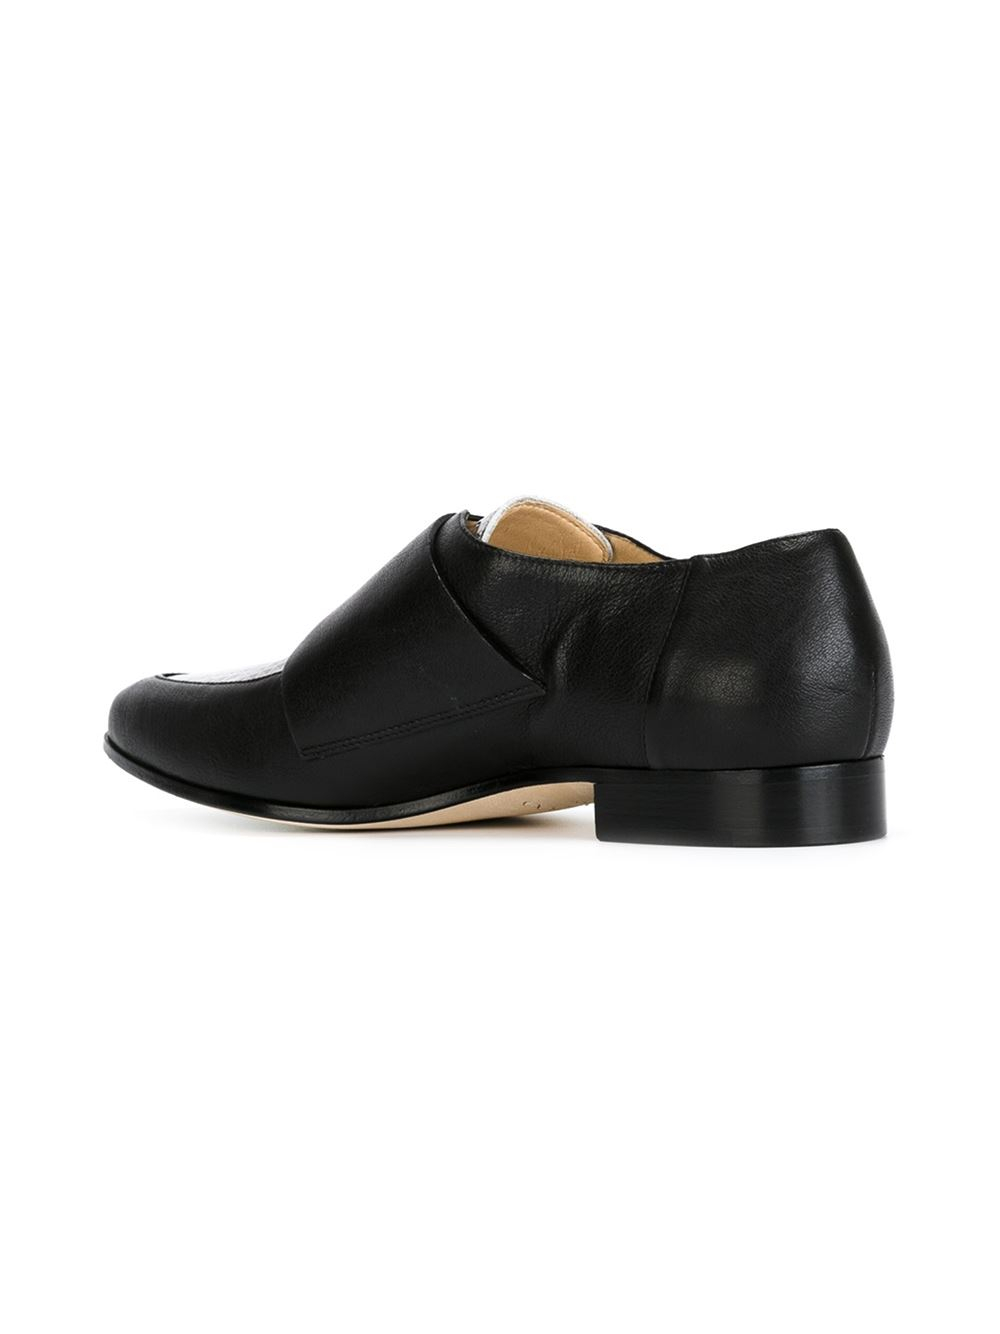 jimmy choo mardi monk shoes in black lyst